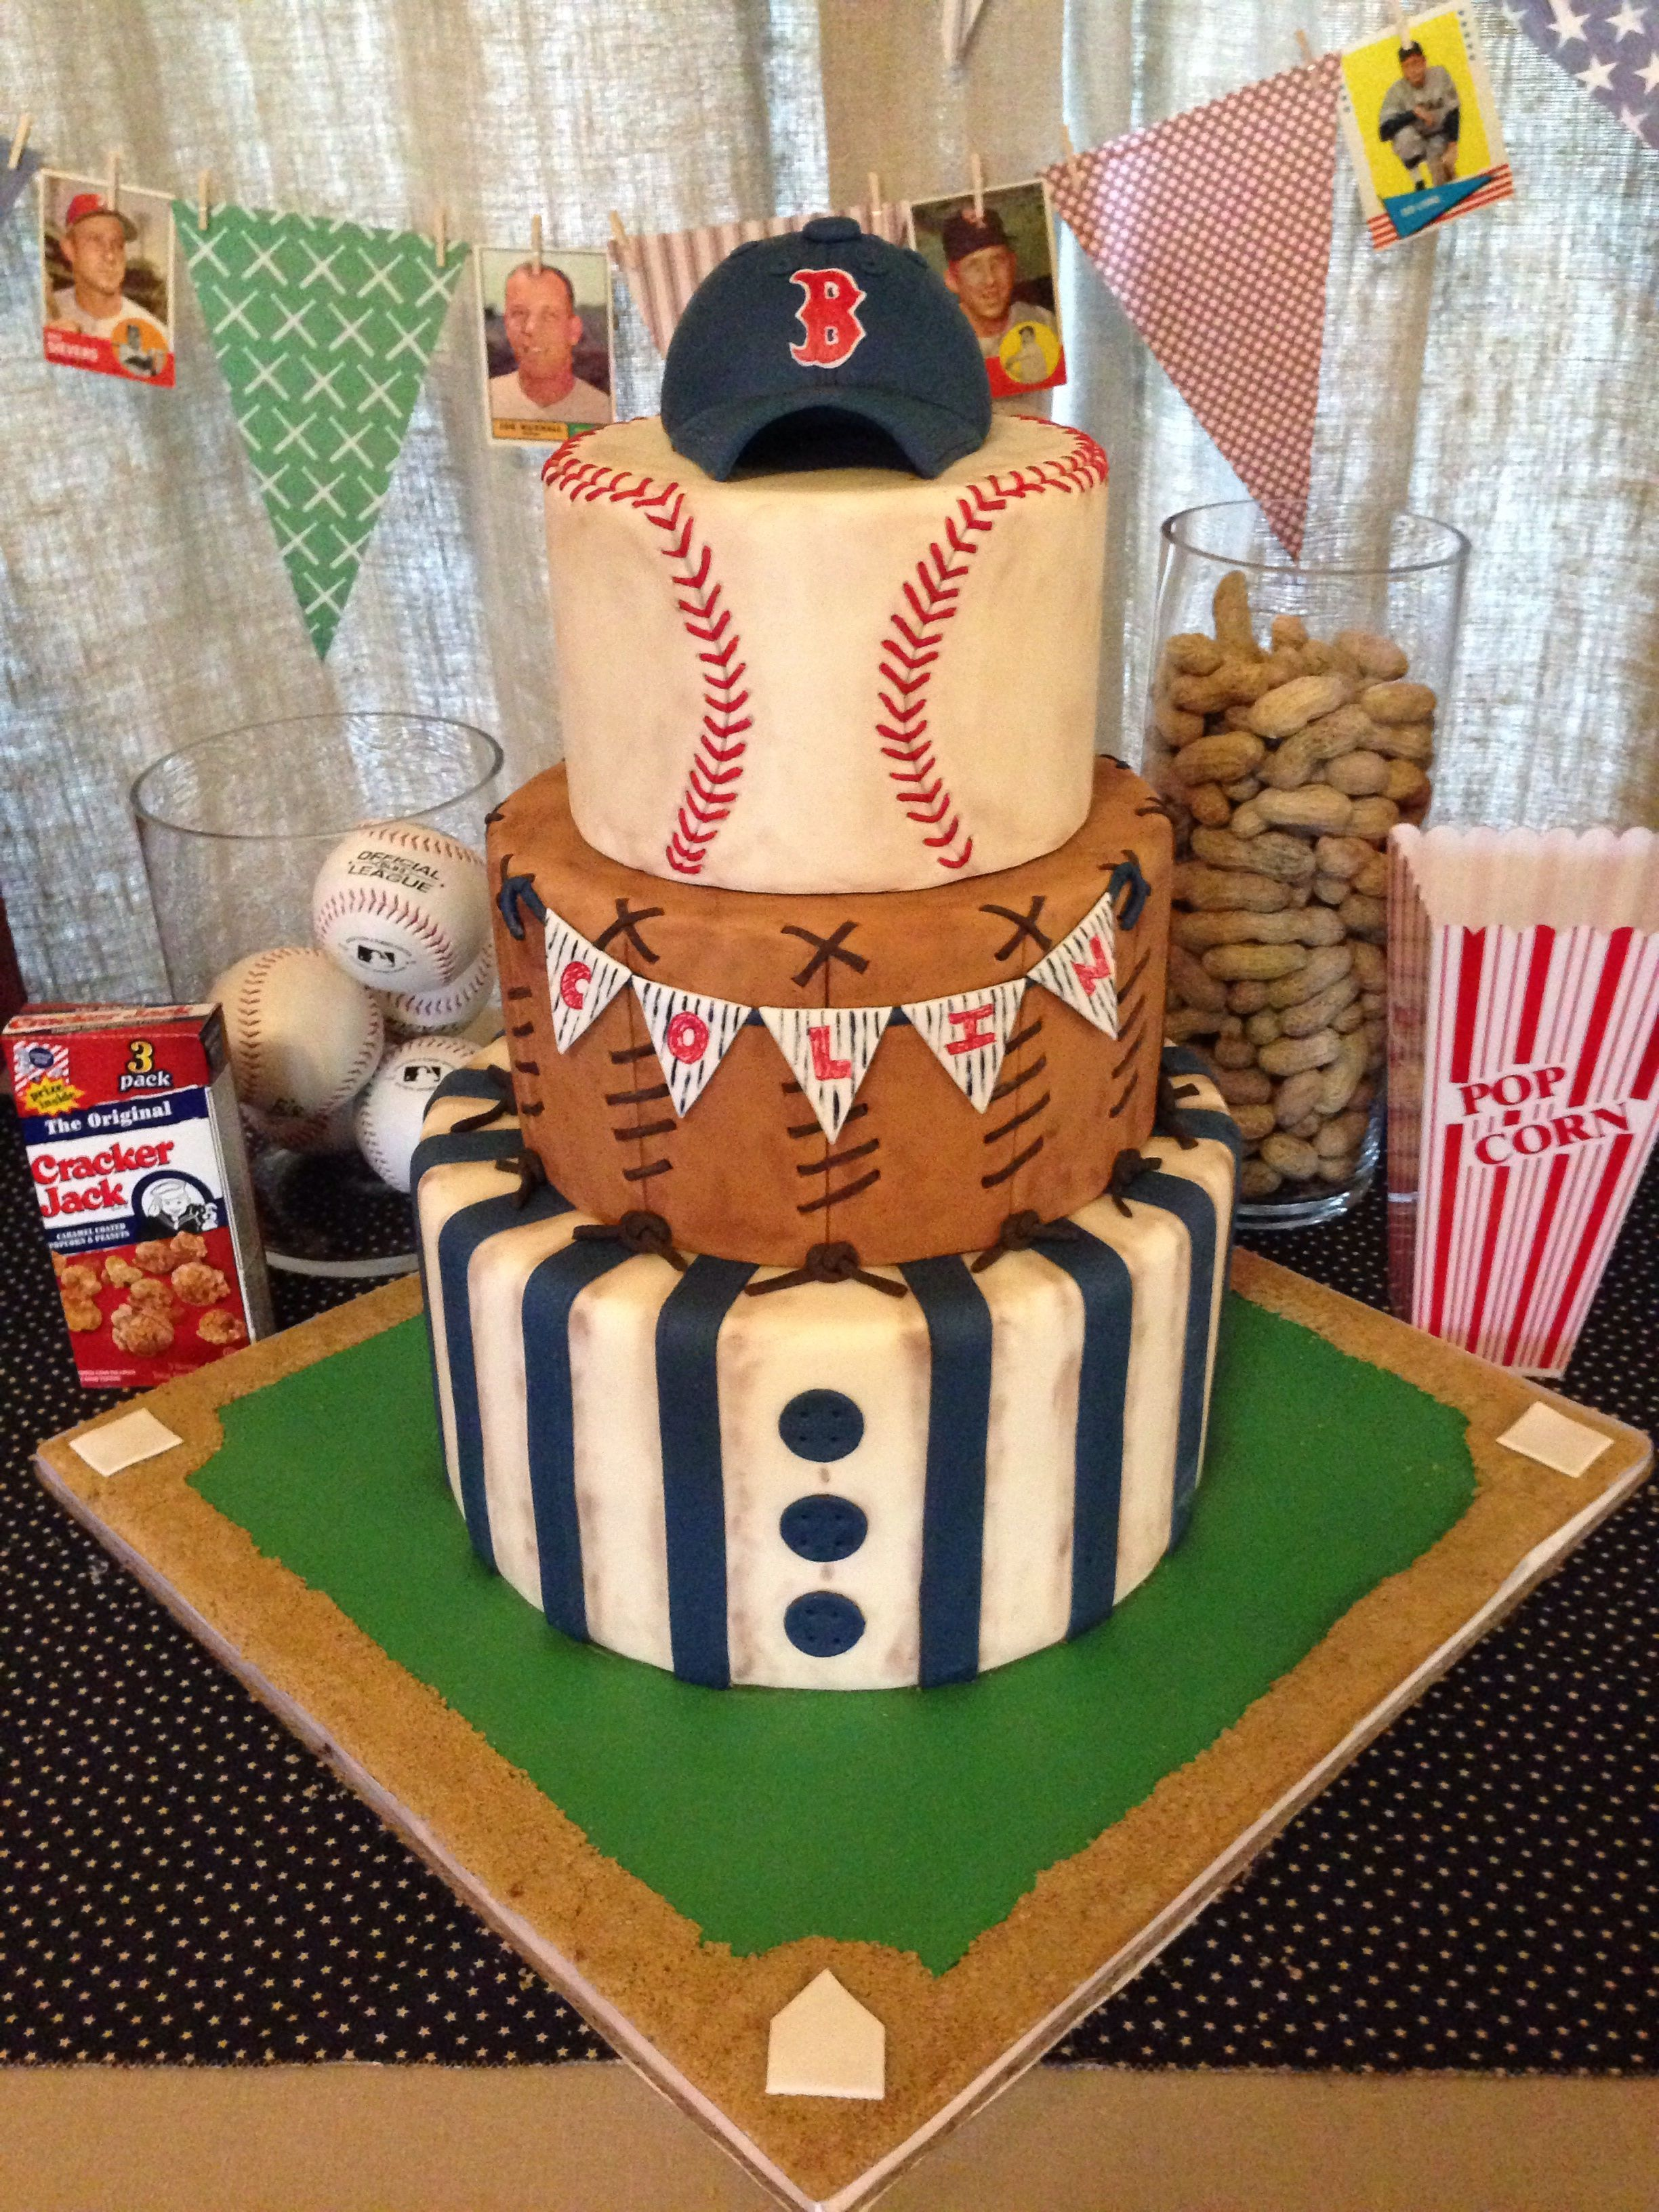 Stupendous Make The Top Layer To Look Like A Baseball Not Round Tier Probably Funny Birthday Cards Online Necthendildamsfinfo